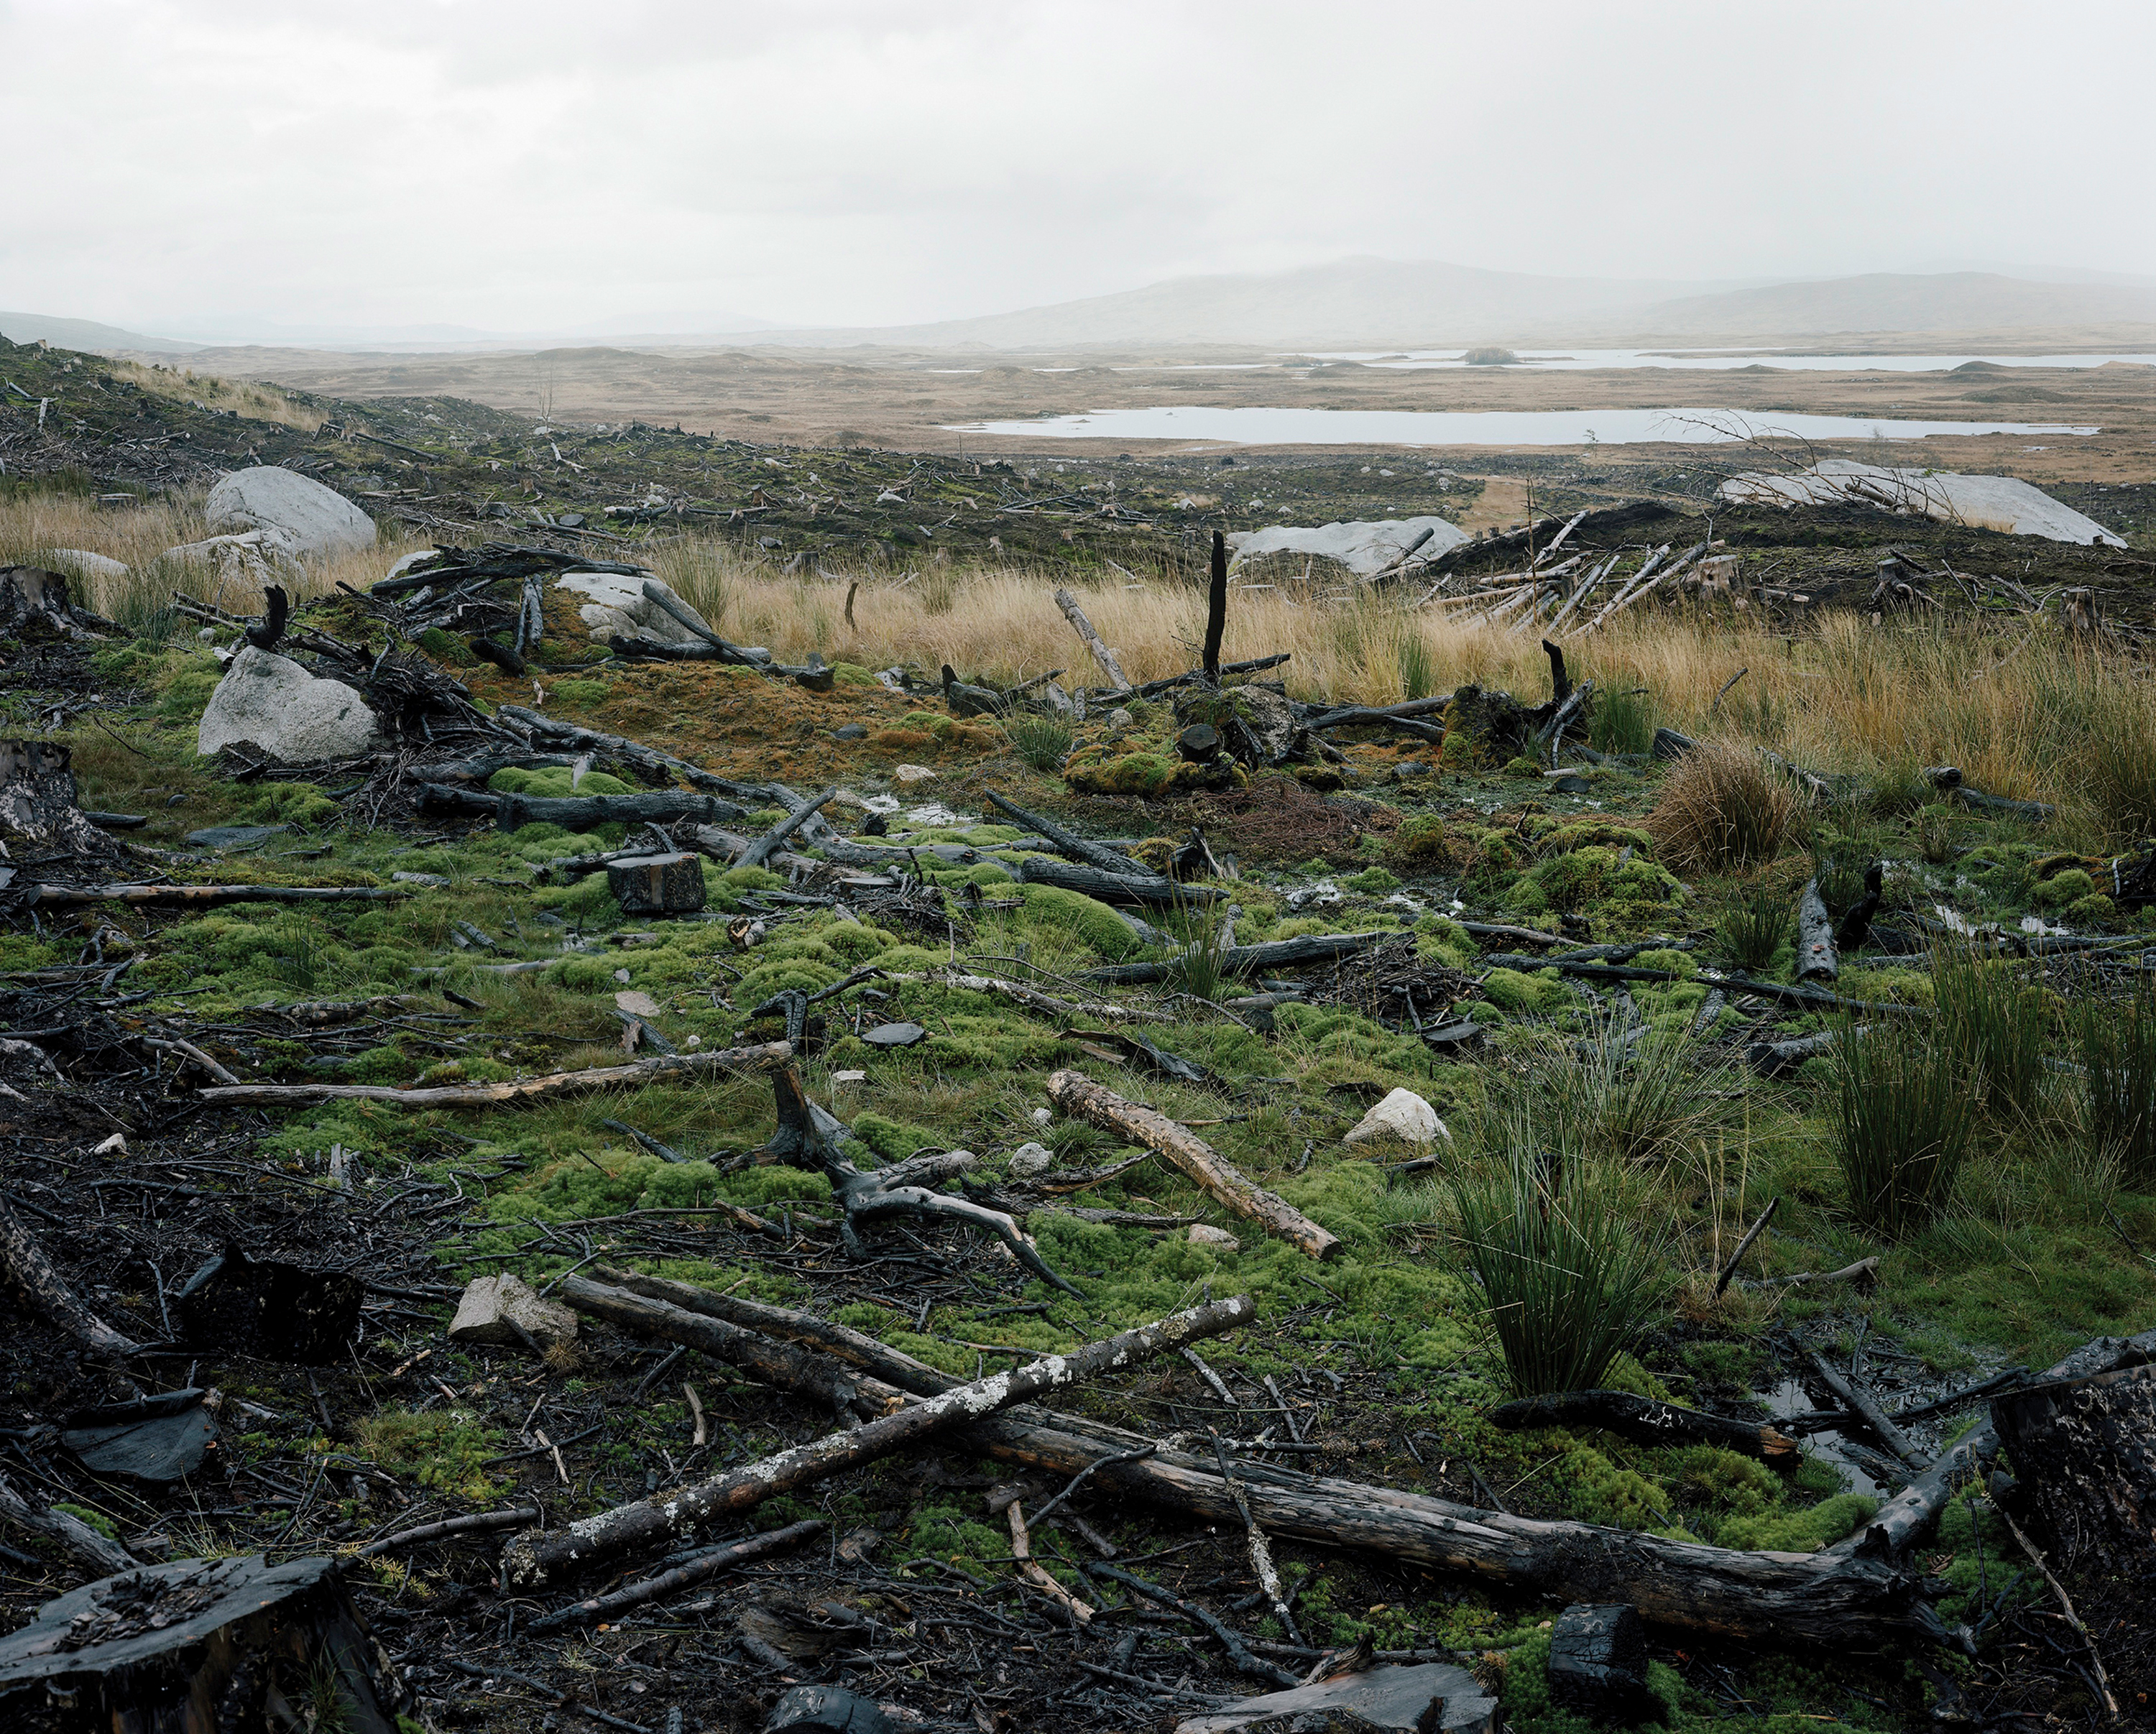 Photograph of a moor blighted by a conifer plantation